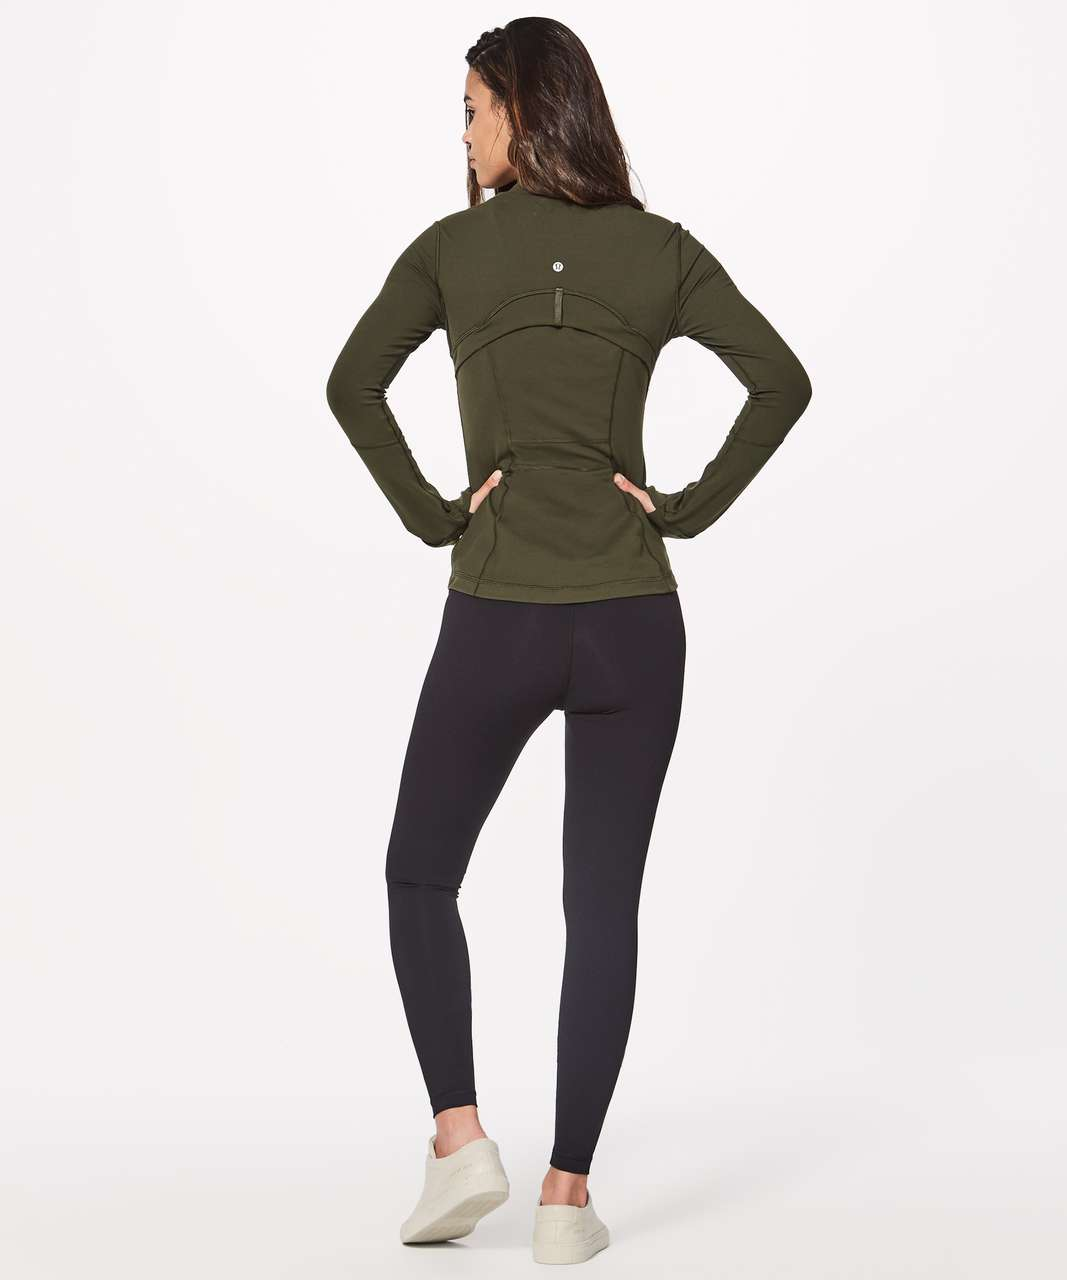 Lululemon Define Jacket - Dark Olive